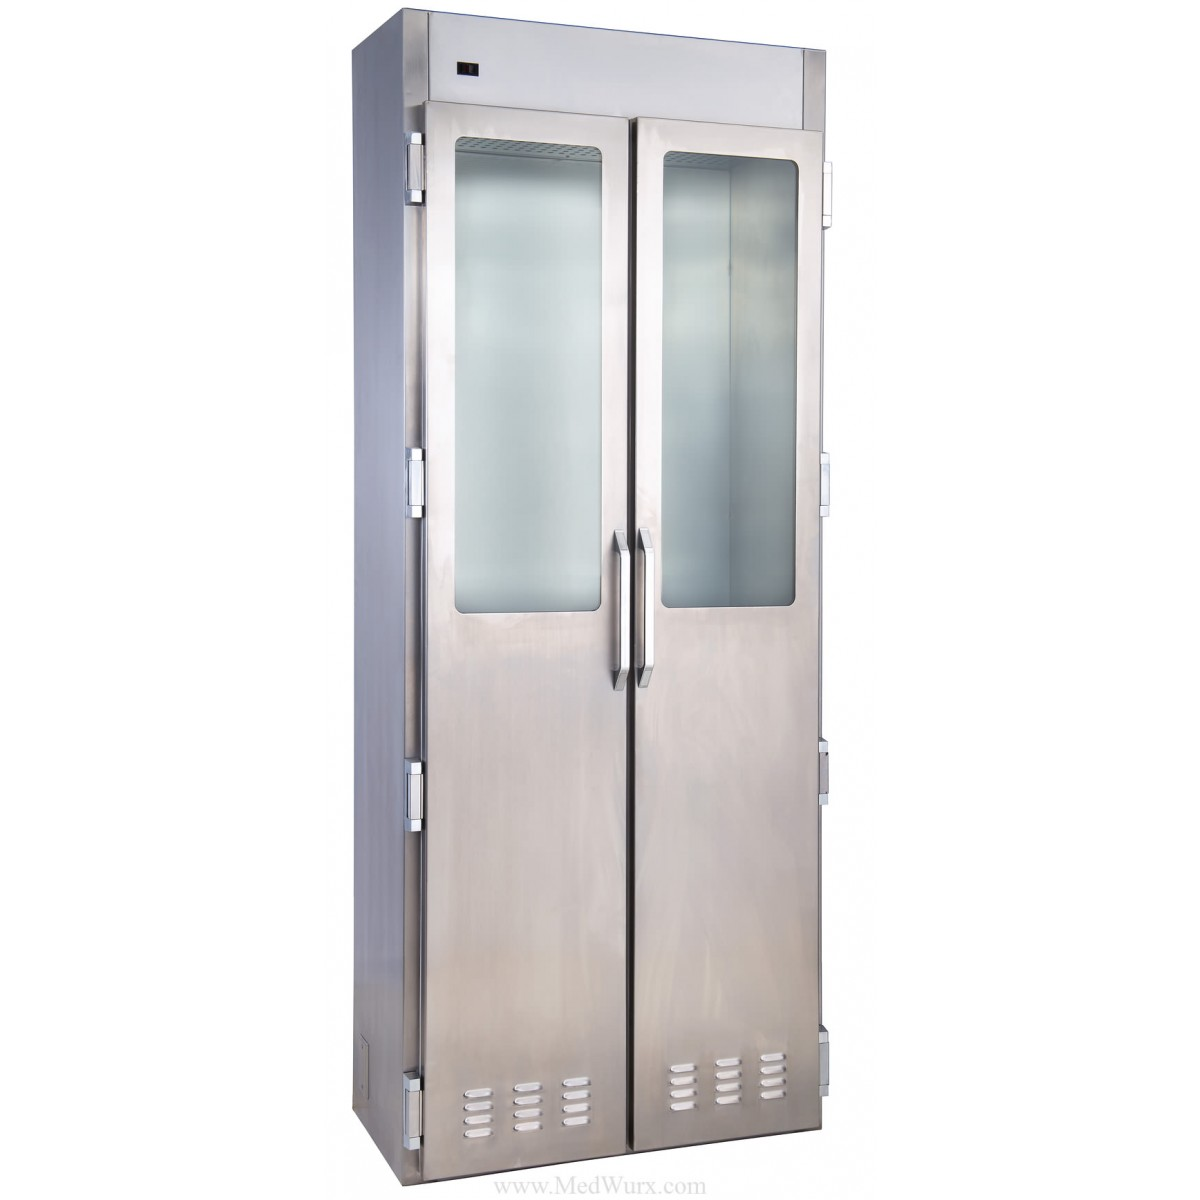 Medwurx stainless steel clean air ventilated flexible for Stainless steel cabinet door